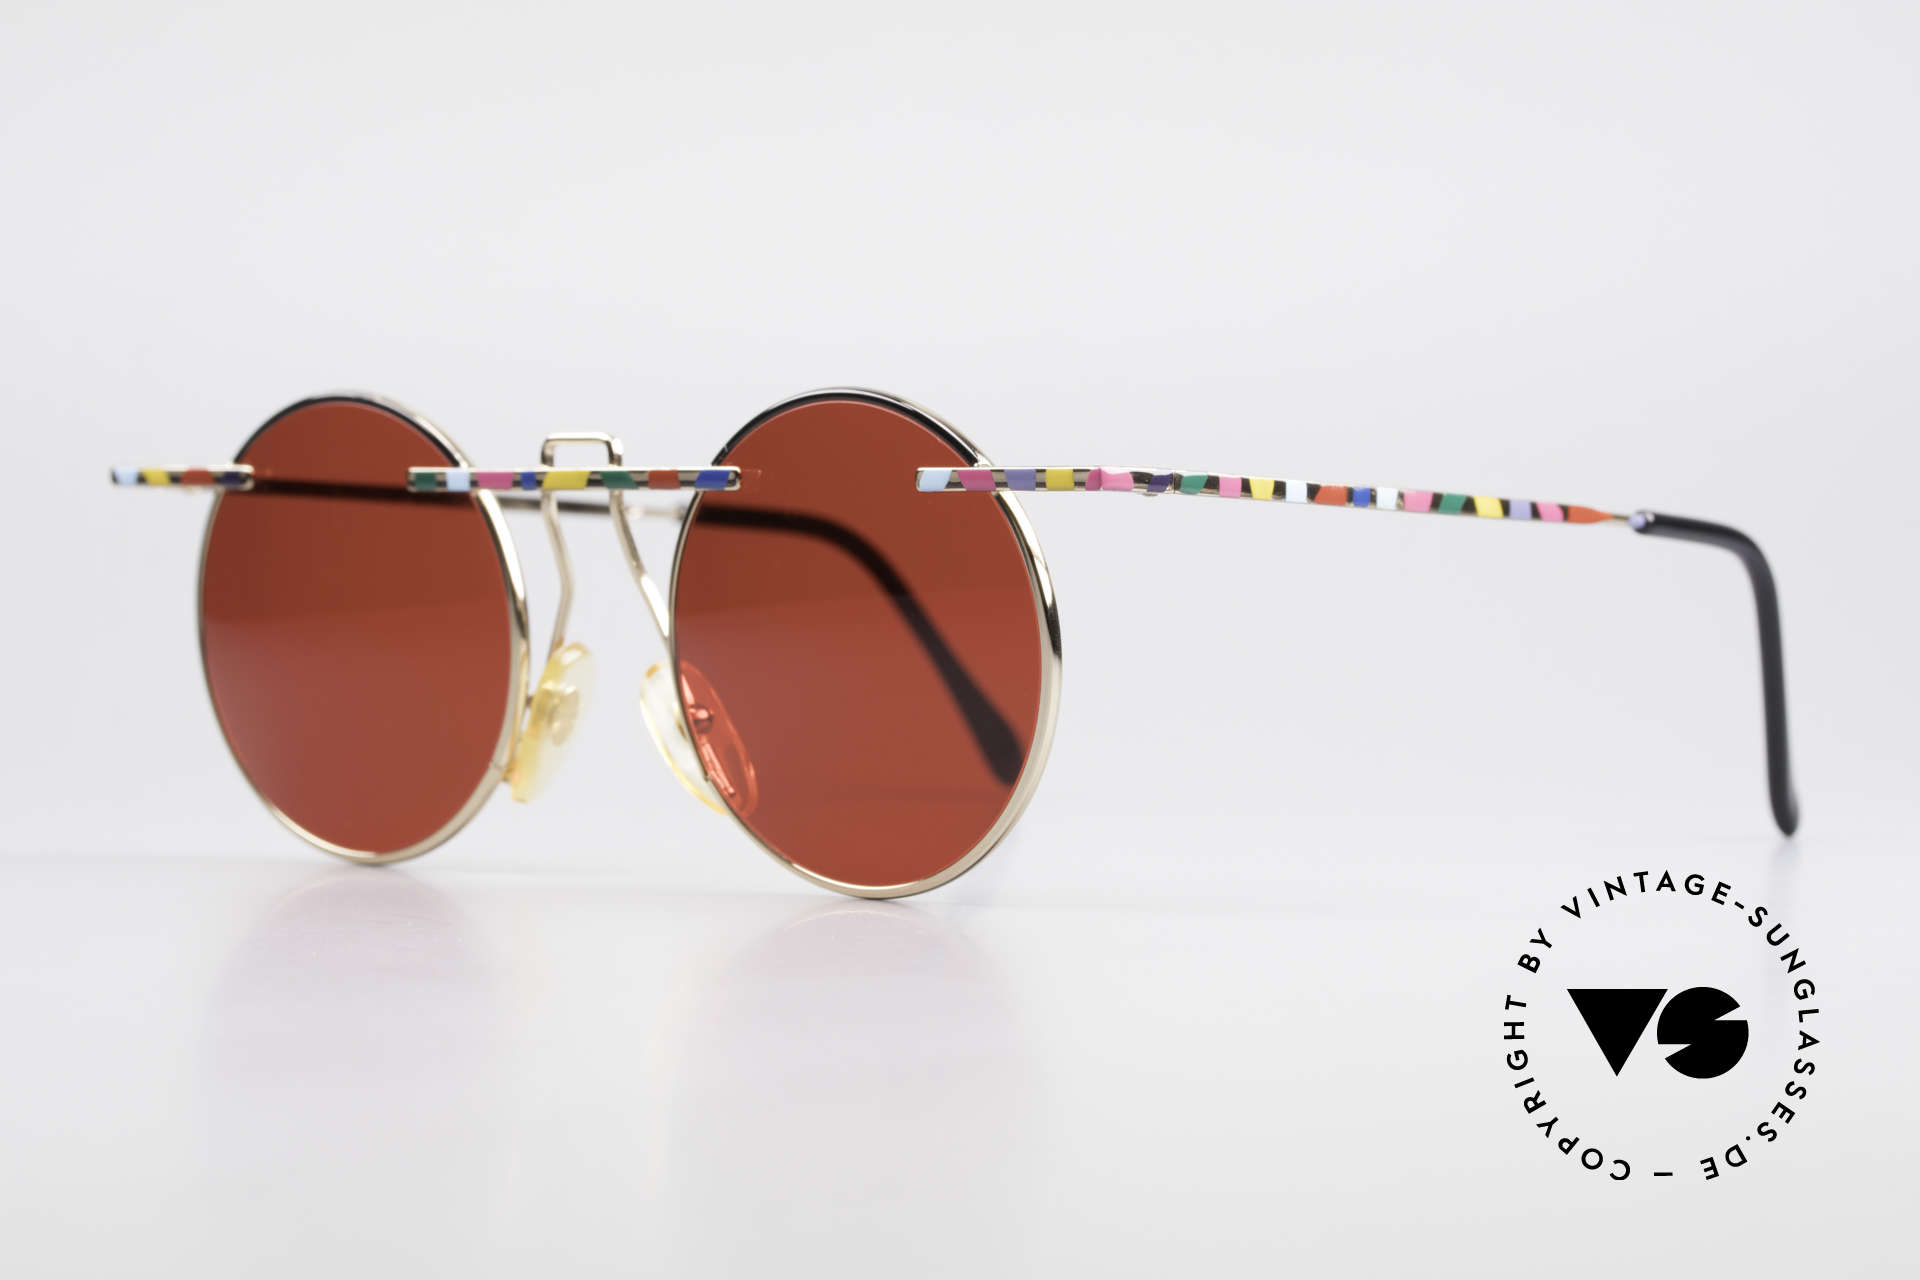 Taxi 222 by Casanova 80's Art Sunglasses 3D Red, represents the exuberance of the Venetian carnival, Made for Men and Women